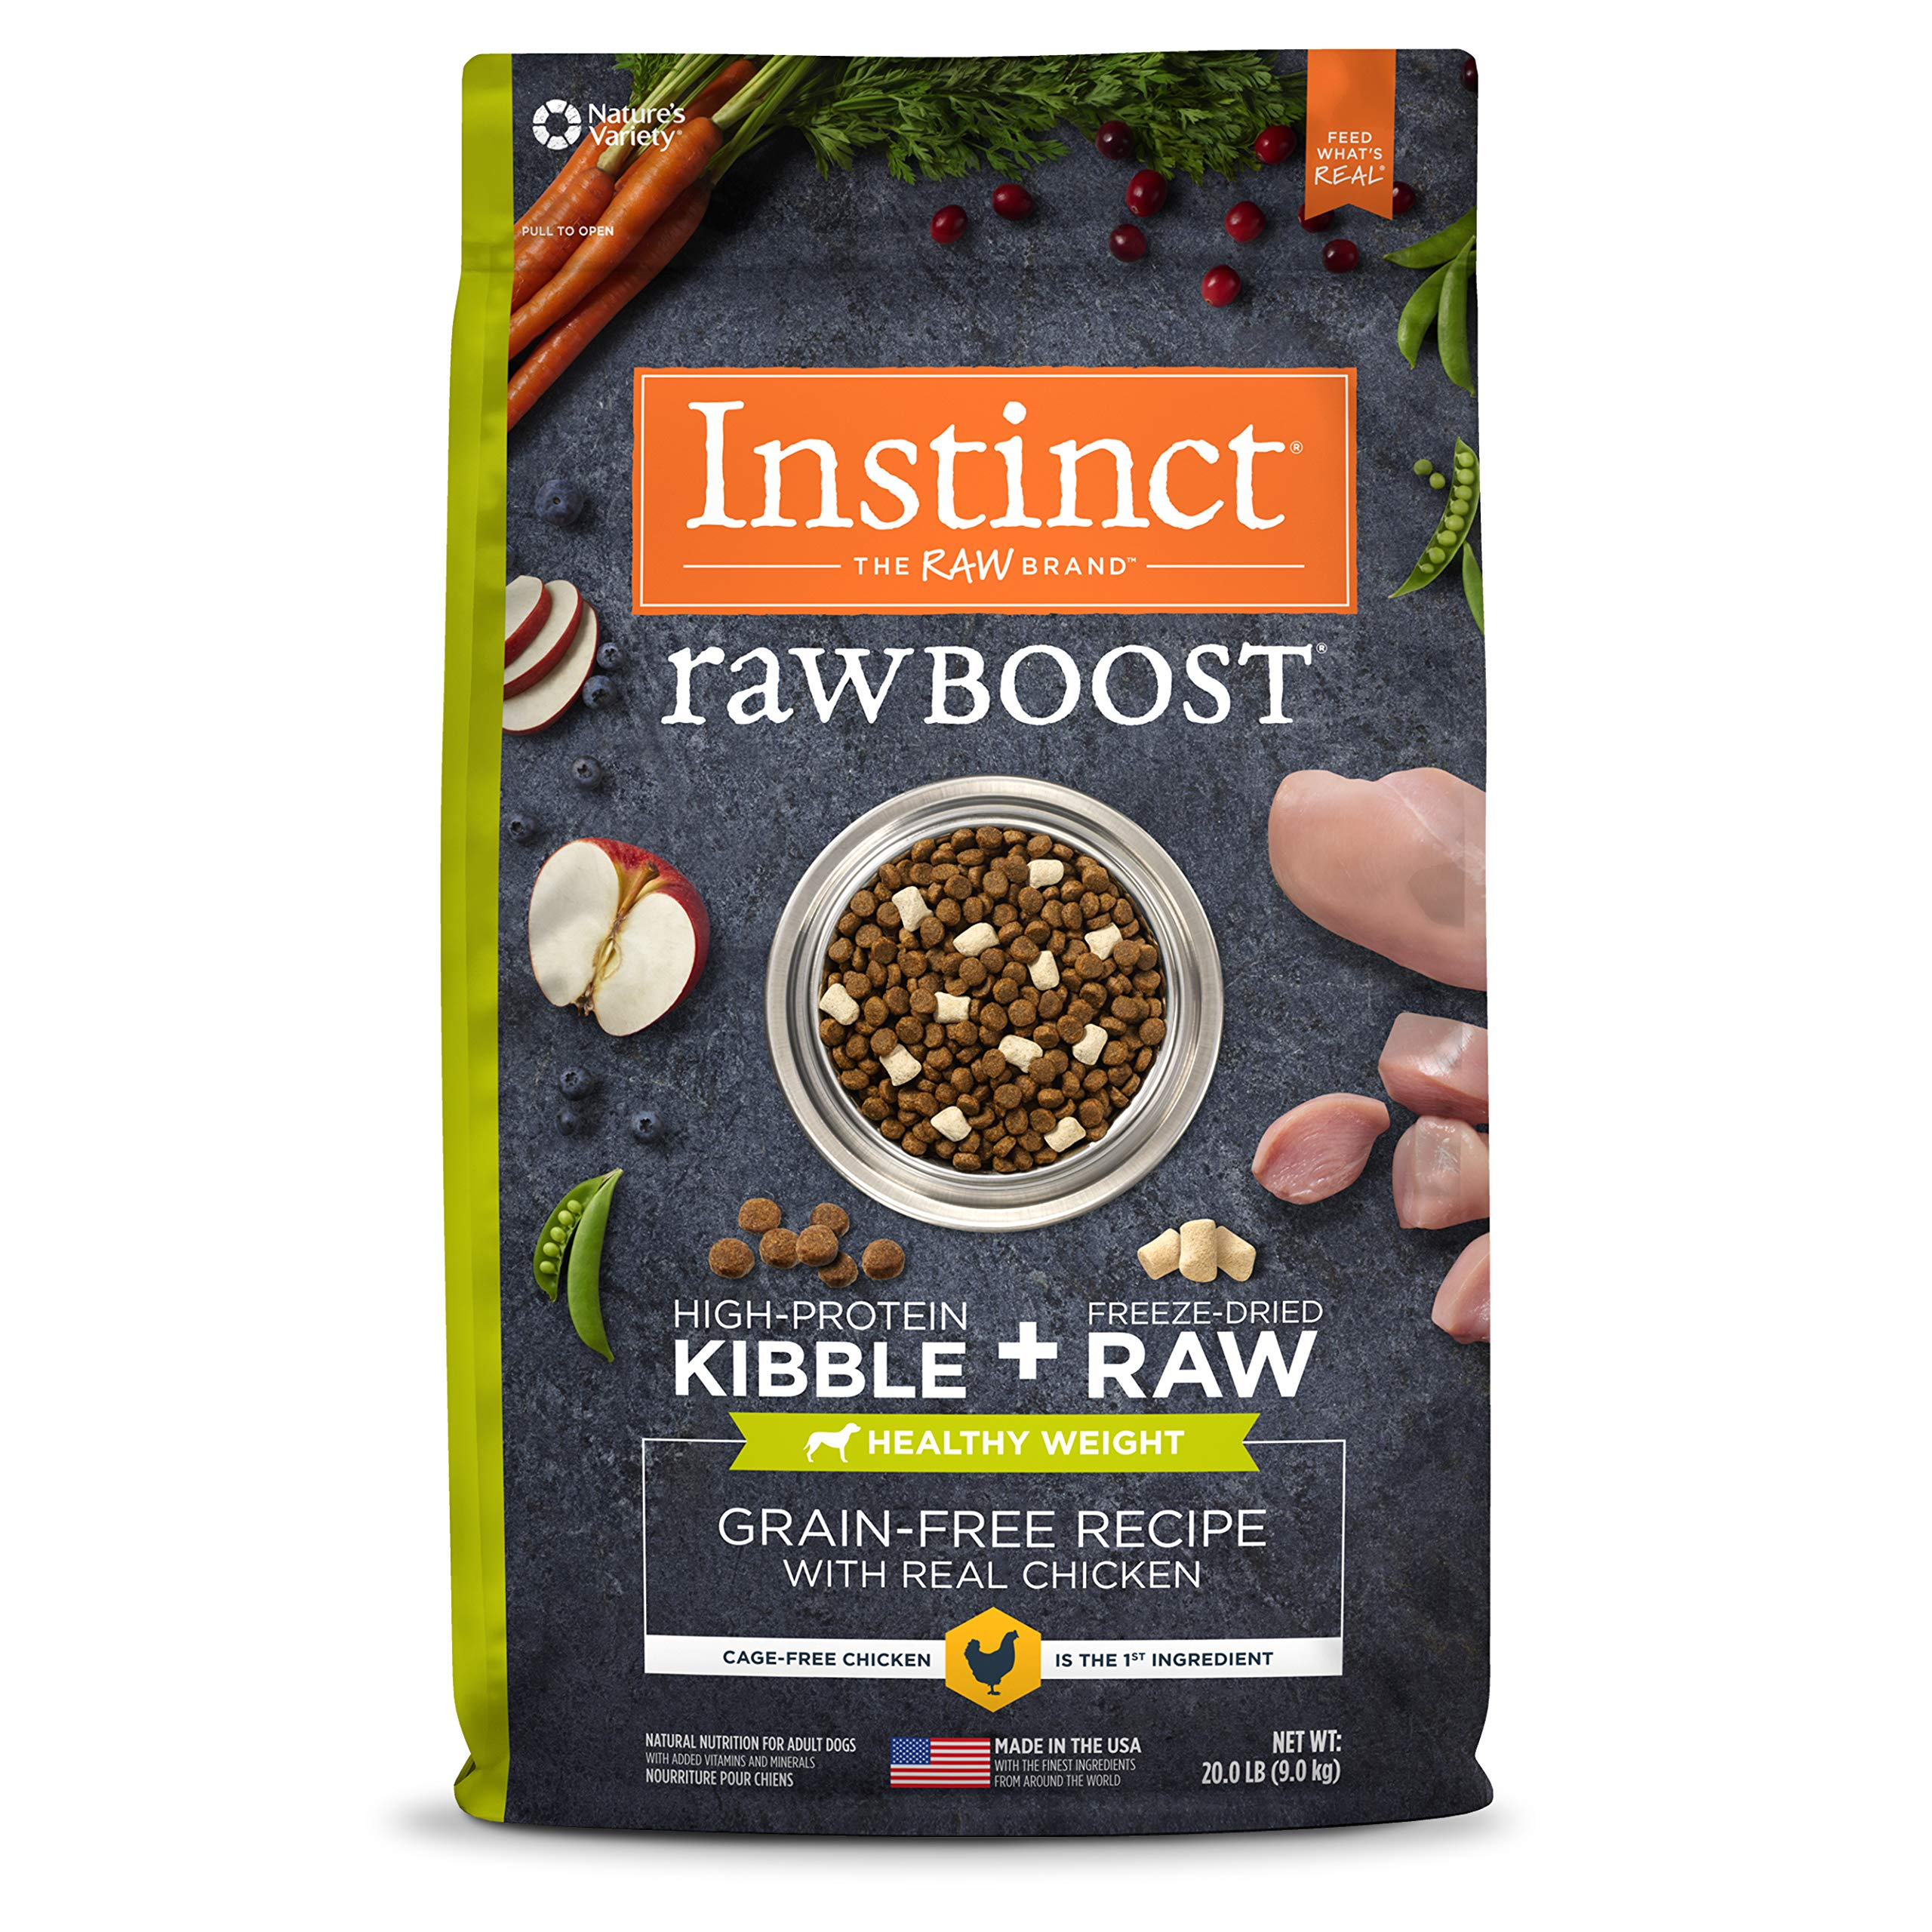 Instinct Raw Boost Healthy Weight Grain Free Recipe with Real Chicken Natural Dry Dog Food by Nature's Variety, 20 lb. Bag by Instinct